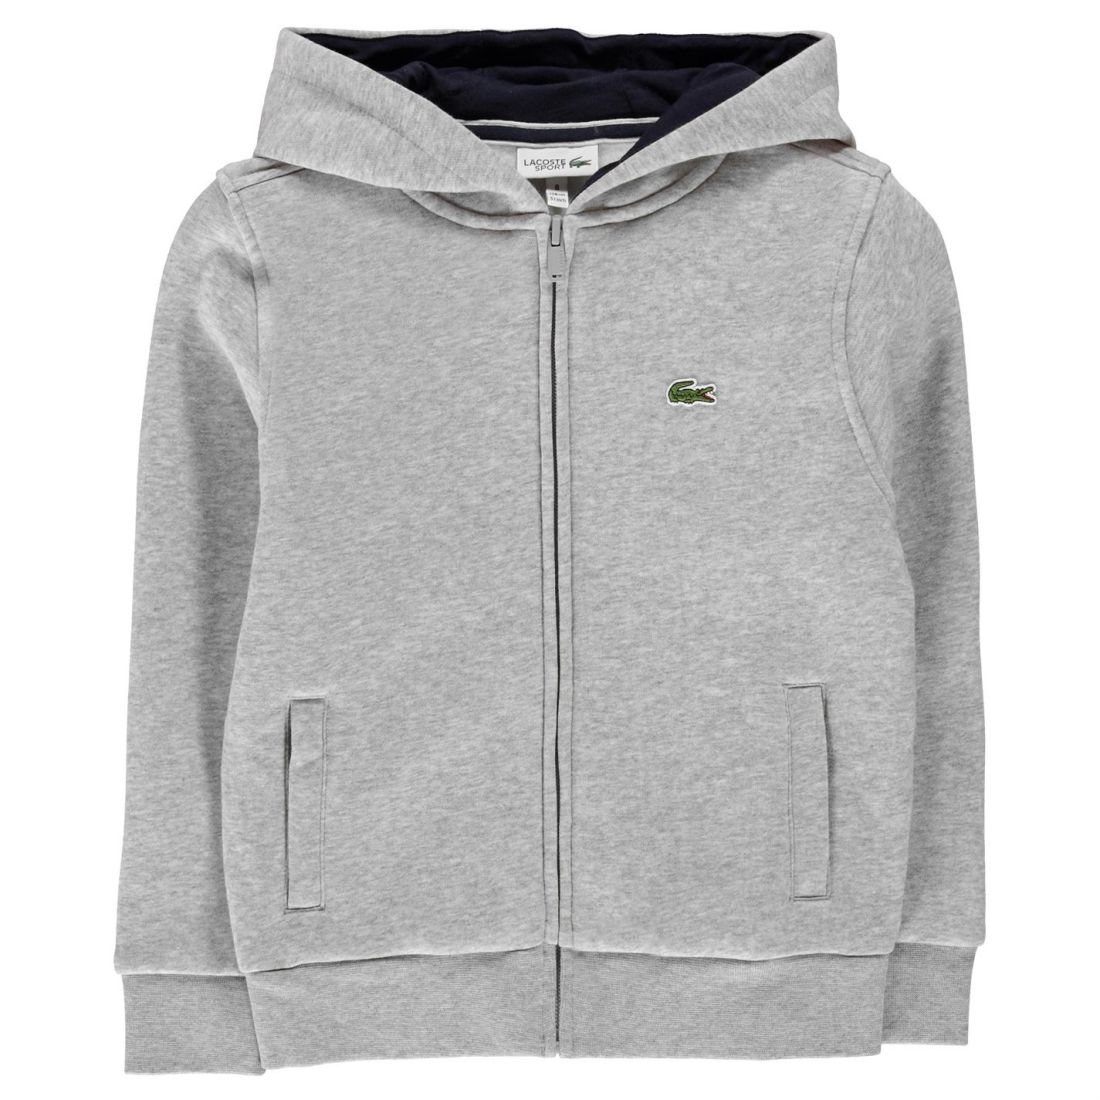 fbbf8a5c14 Details about Kids Lacoste Basic Zip Hoodie Hooded New